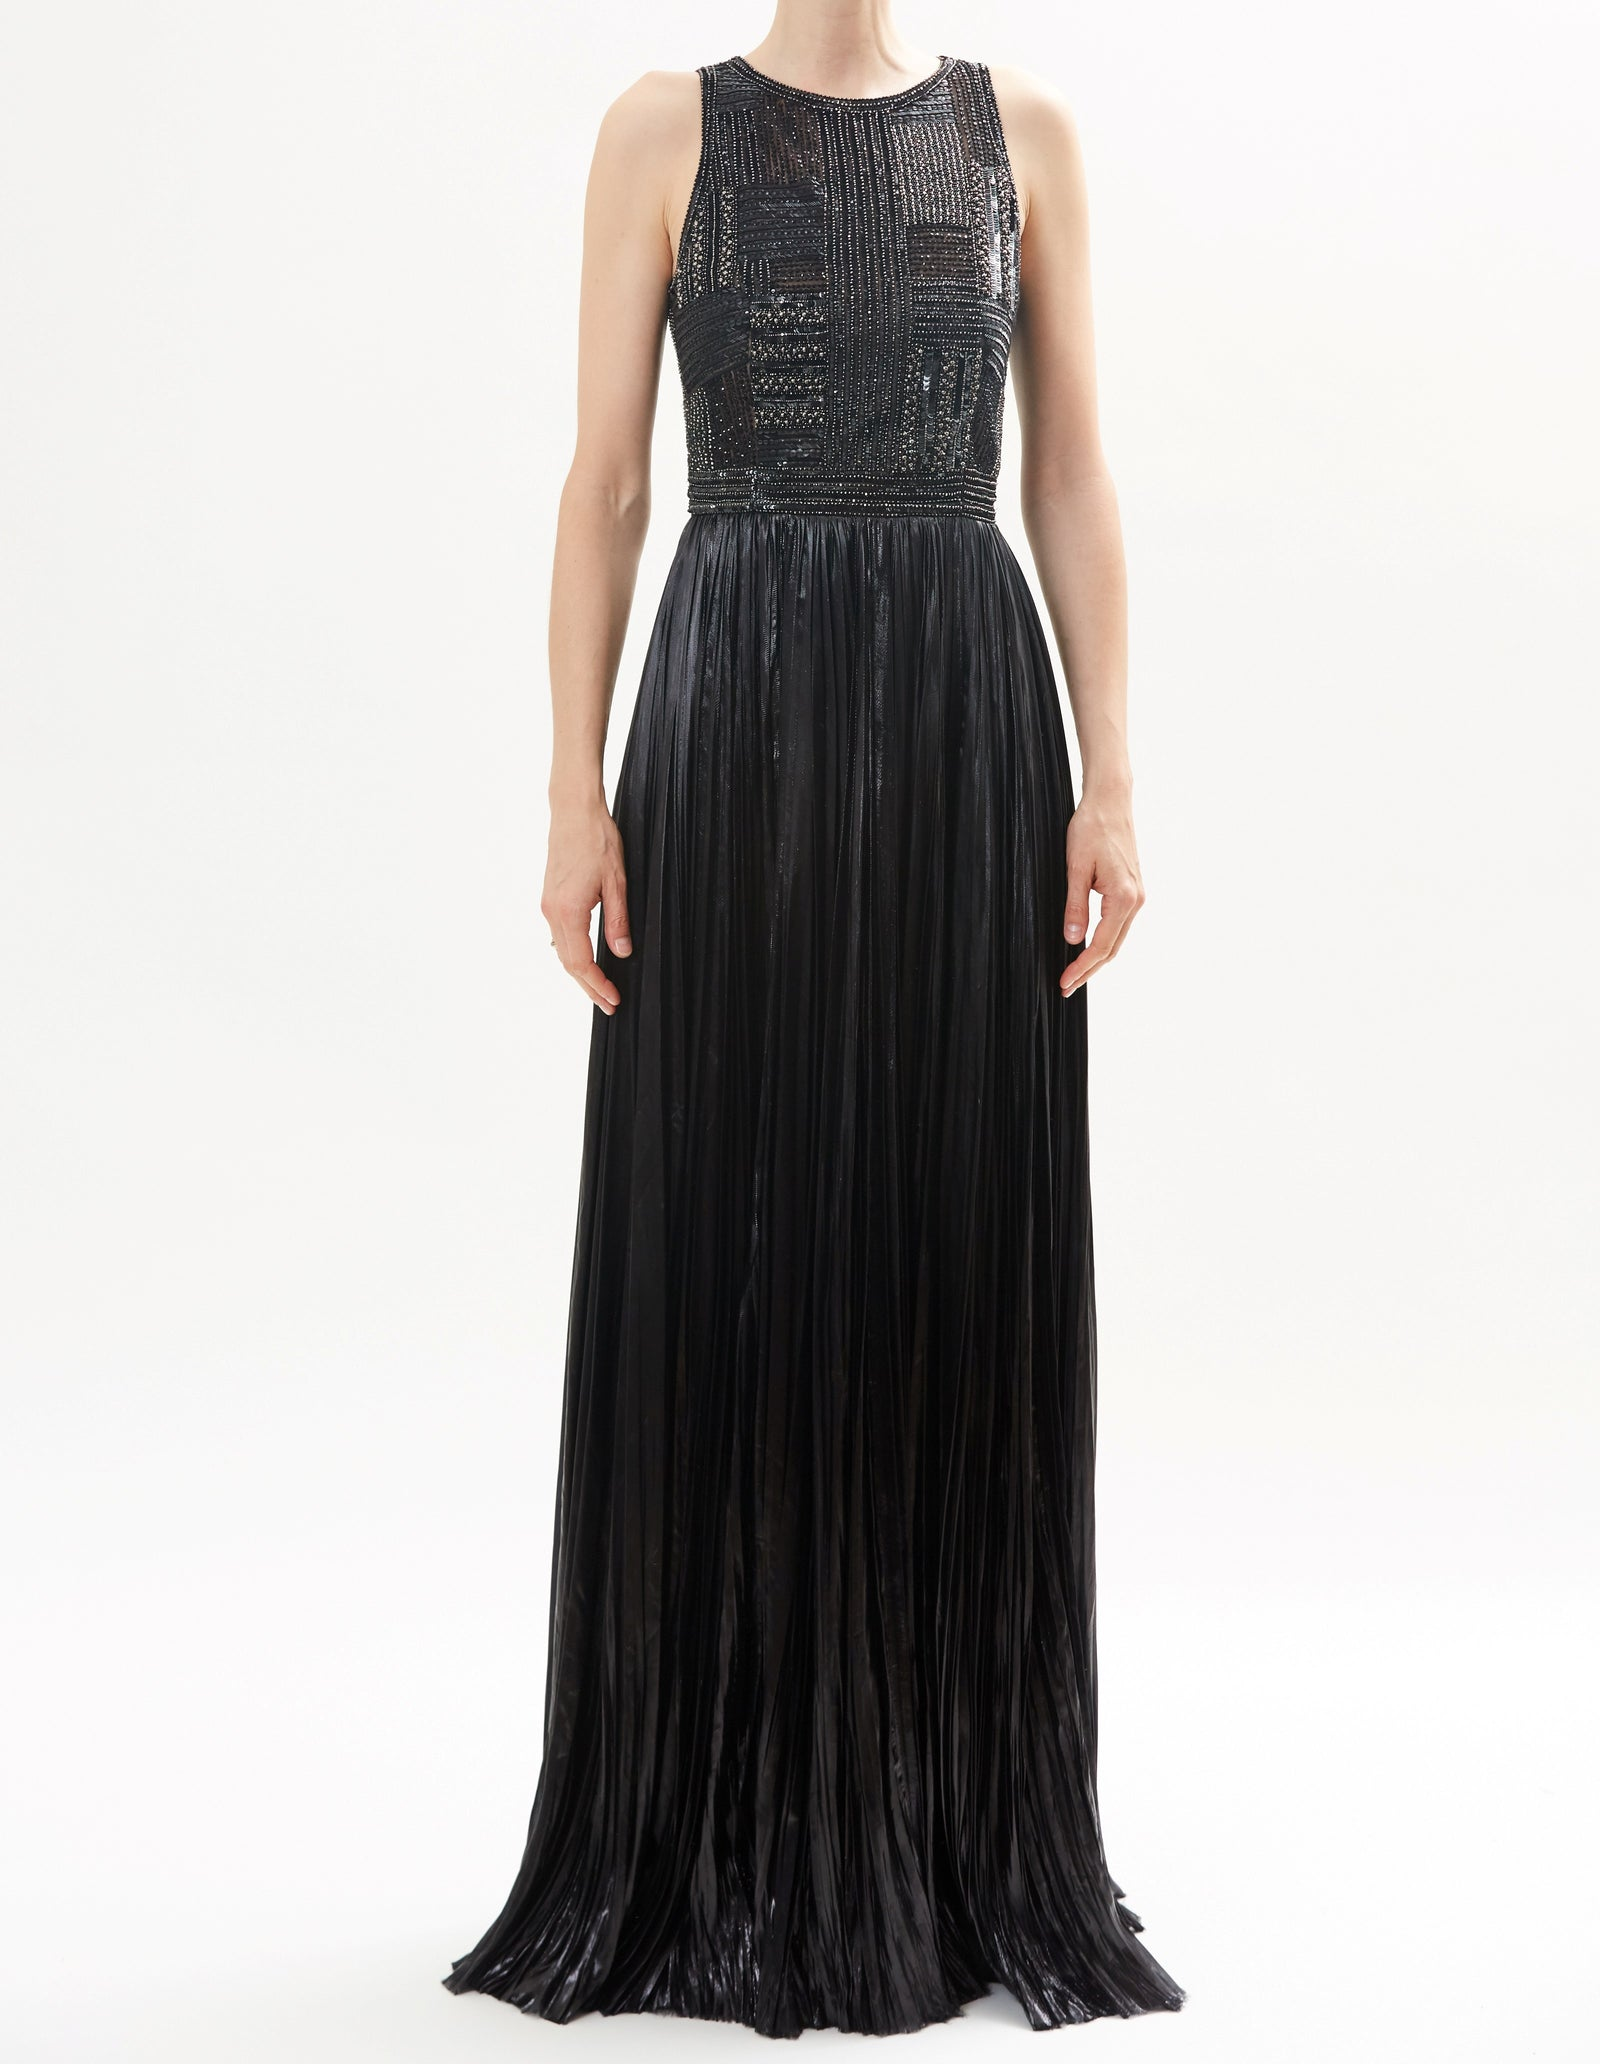 Black Embroidered Bustier Halter Neck Gown With Hand-Pleated Lurex Skirt